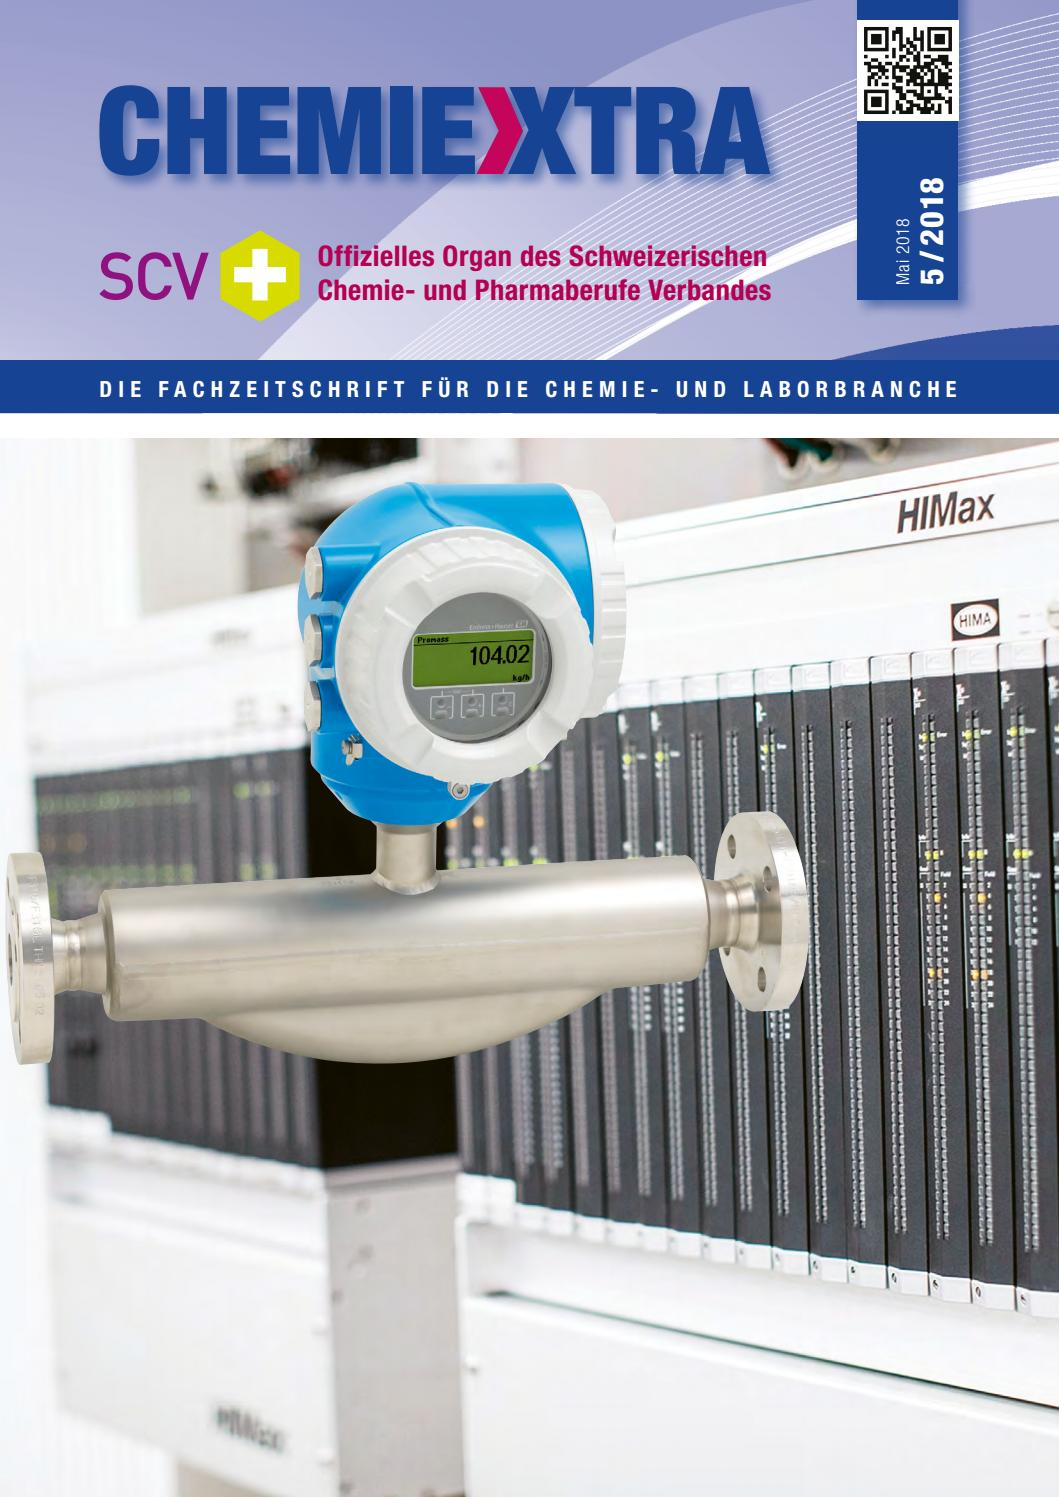 070f29d056 Chemiextra 5 2018 by SIGWERB GmbH - issuu